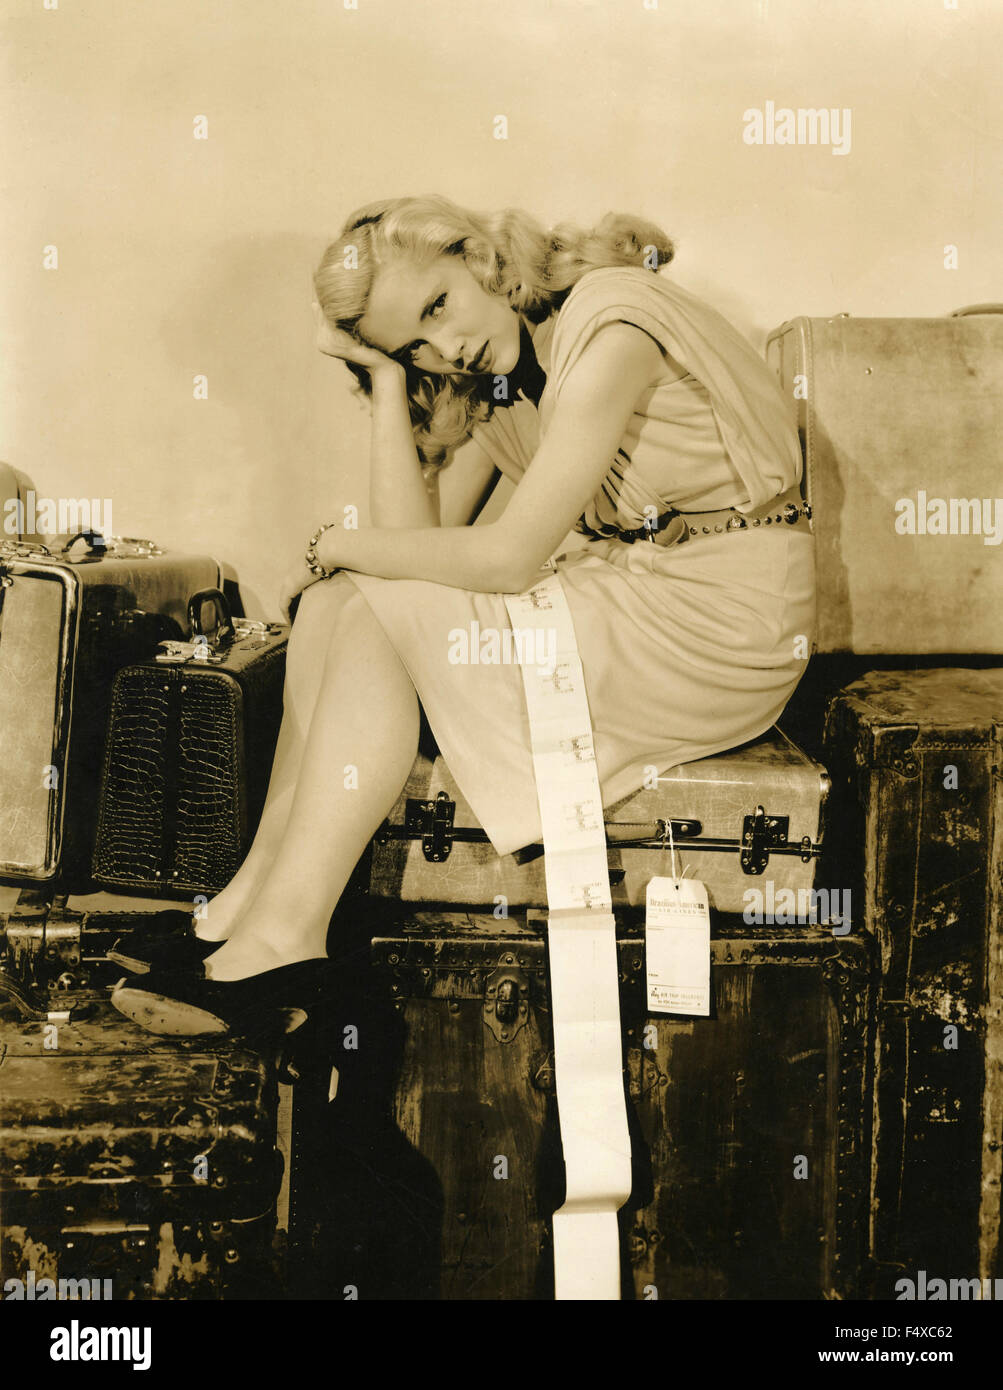 American actress Sally Forrest sitting on a pile of suitcases, USA - Stock Image